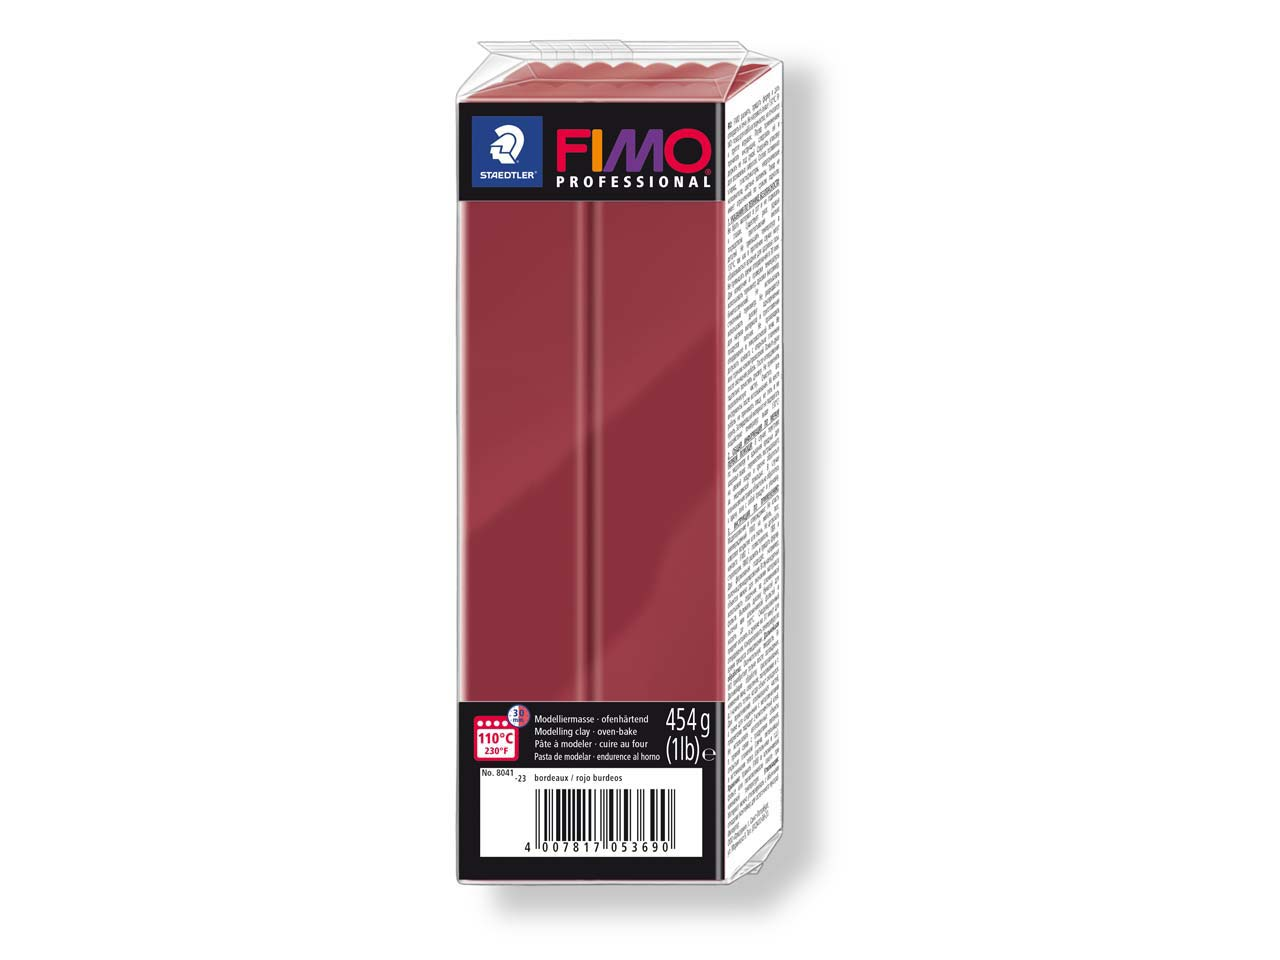 Fimo Professional Bordeaux 454g    Polymer Clay Block Fimo Colour     Reference 23